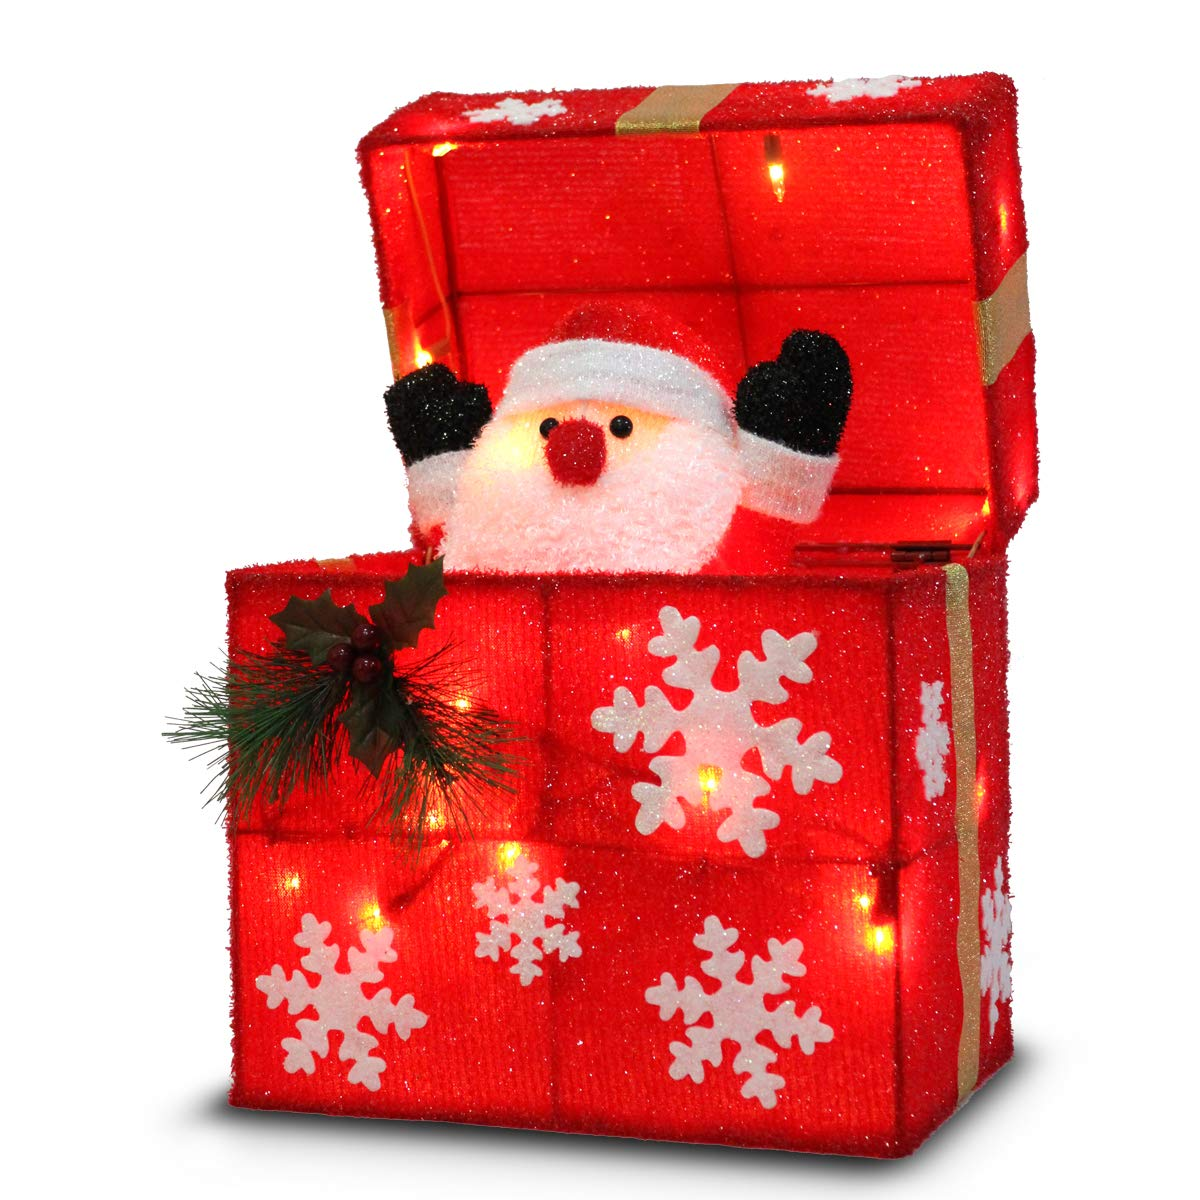 Later M 12'' Outdoor Gift Box Ornament+ Automatically Open Cover, Santa Lifting Movement, Built-in 18 LED Lights, Ip44 Water-Resistant, UL&CE Certificate, Perfect Decoration in the Garden by Holiday